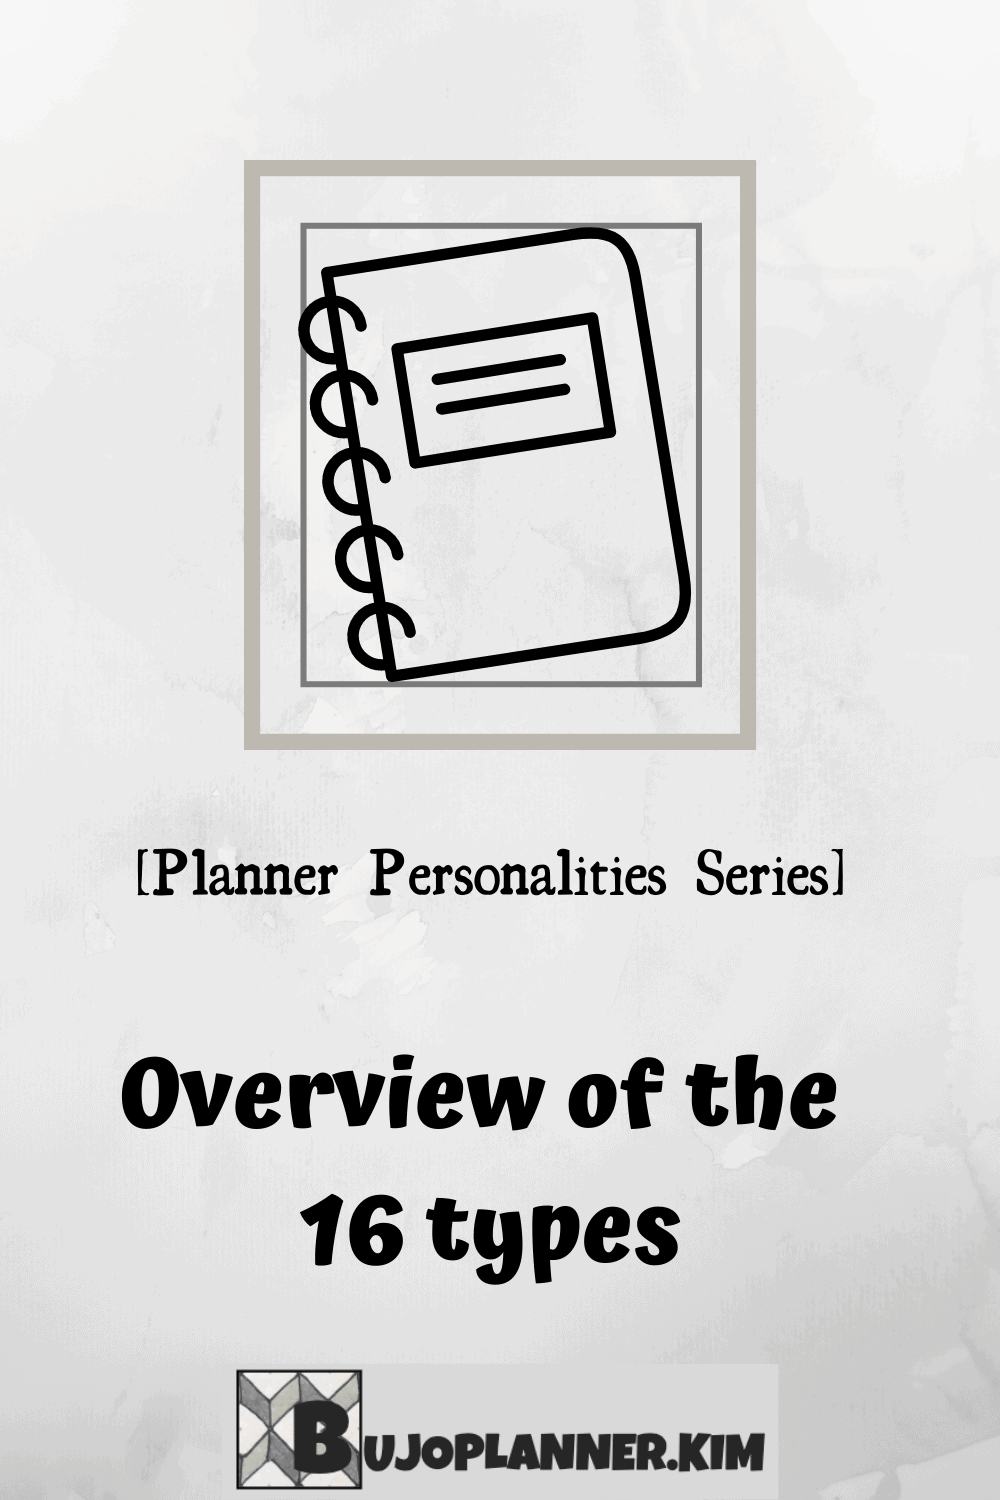 Title picture says planner personalities series overview of the 16 types